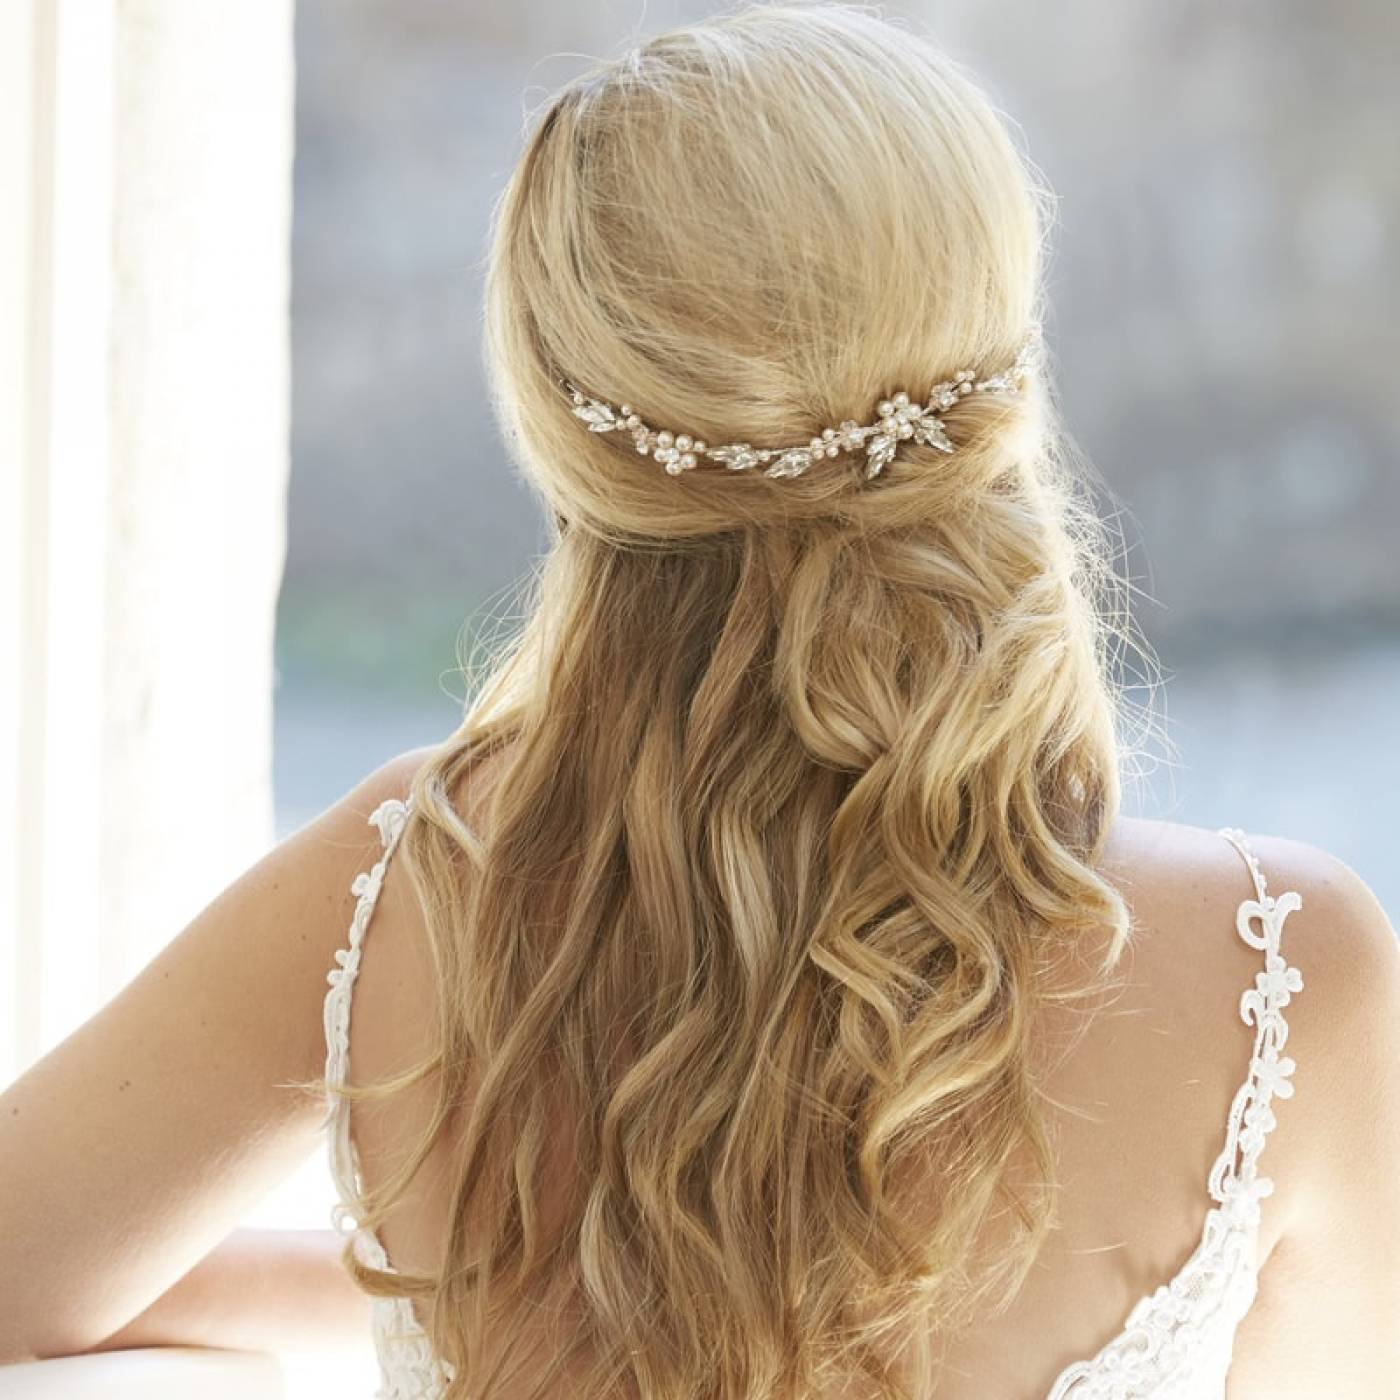 arianna-calista-pearl-and-crystal-mini-wedding-hair-vine-ar575-model-4-1400x1400